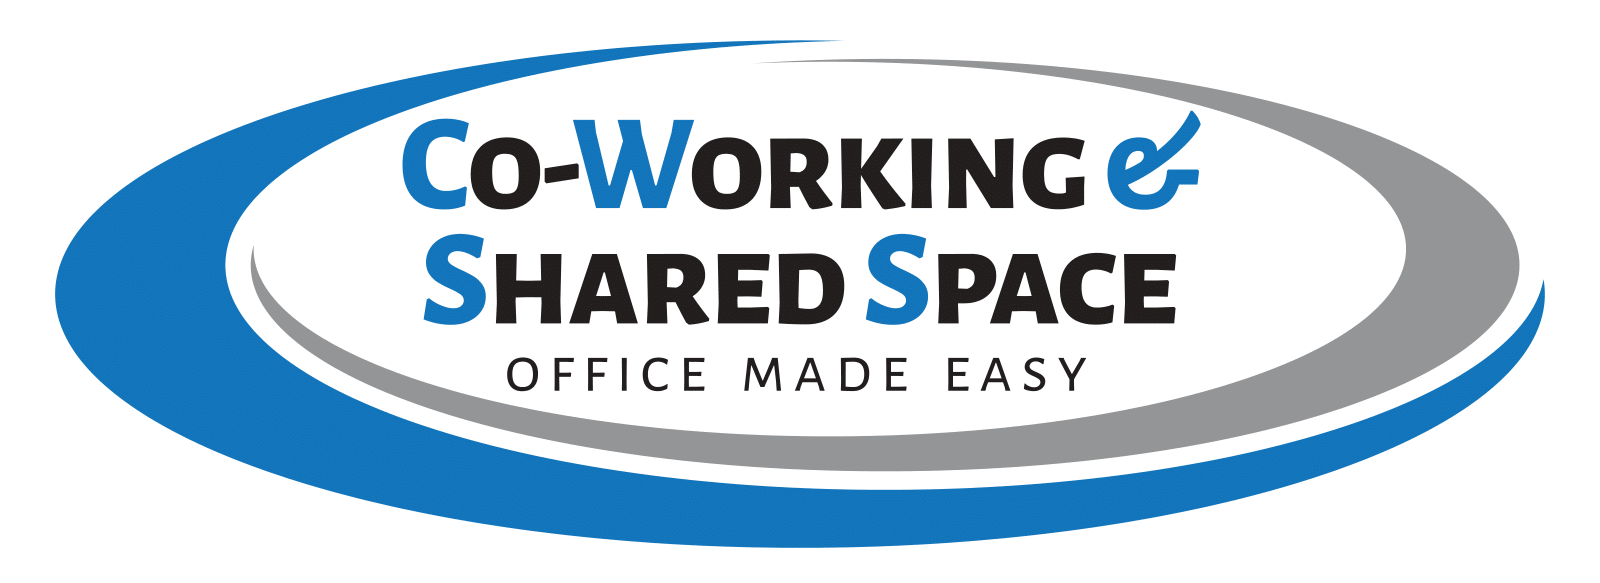 Coworking & Shared Space LLC